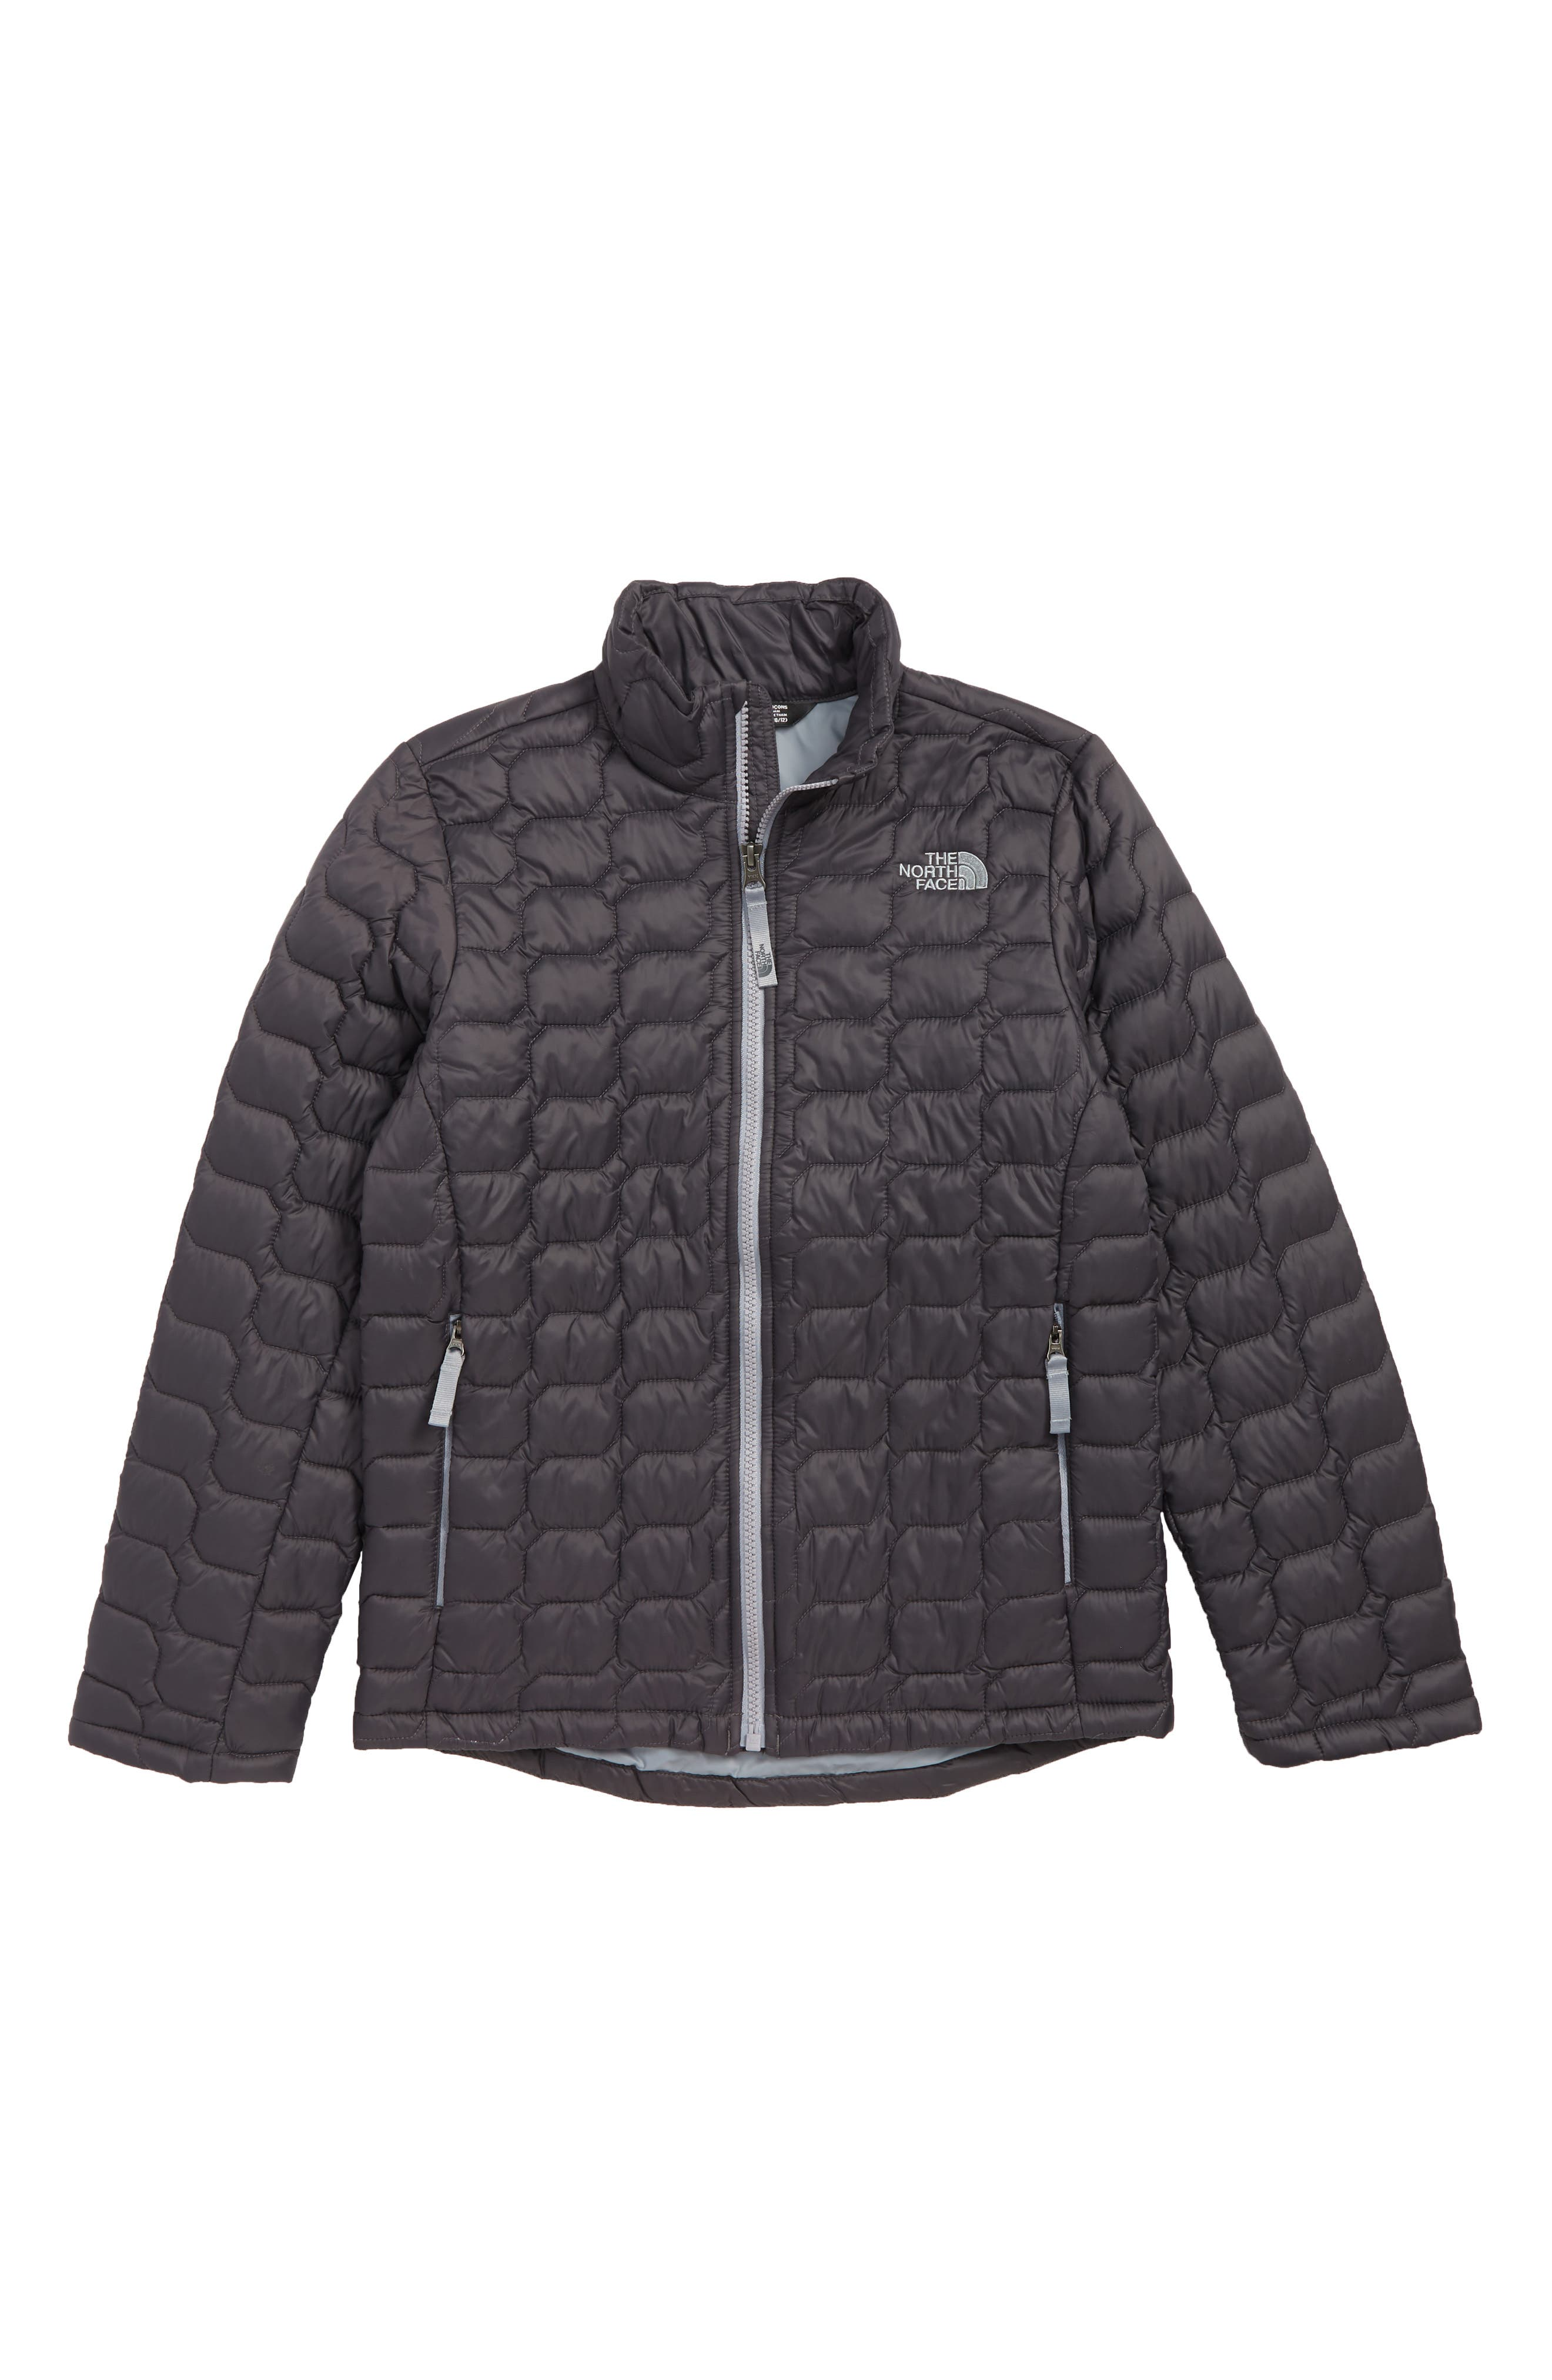 THE NORTH FACE ThermoBall<sup>™</sup> PrimaLoft<sup>®</sup> Packable Jacket, Main, color, GRAPHITE GREY